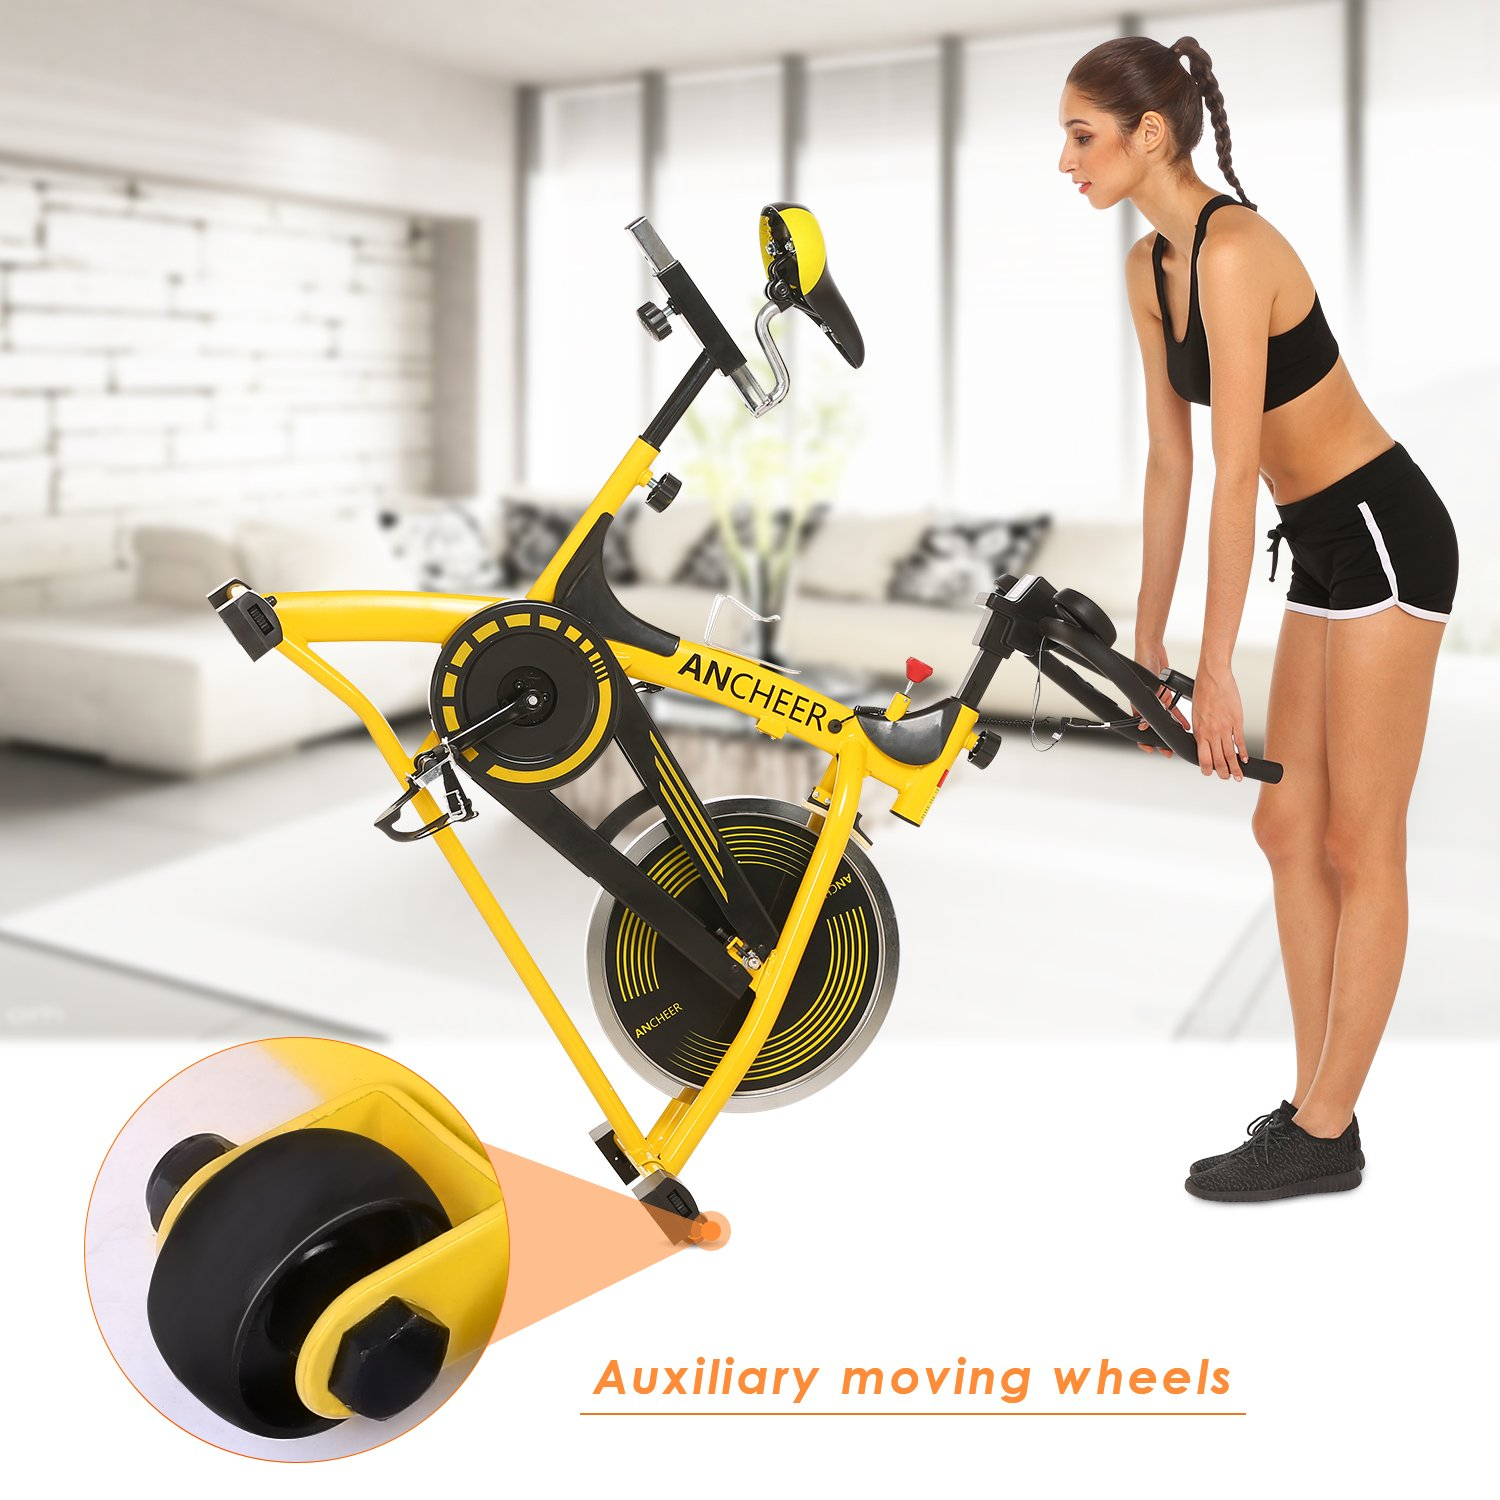 ANCHEER Stationary Bike, 40 LBS Flywheel Belt Drive Indoor Cycling Exercise Bike with Pulse, Elbow Tray (Model: ANCHEER-A5001) (Yellow) by ANCHEER (Image #8)